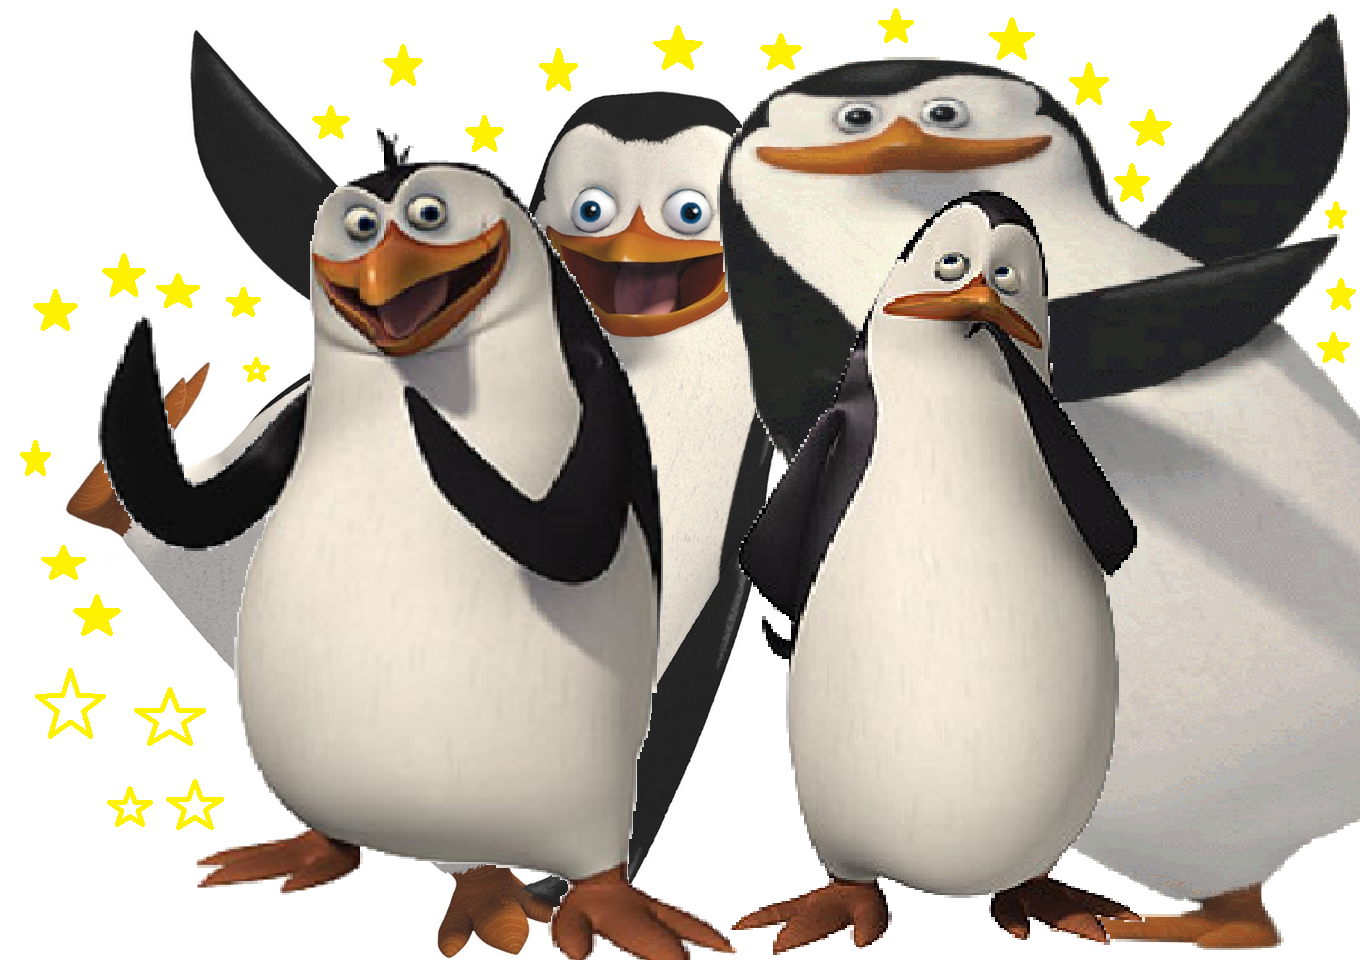 The-team-penguins-of-madagascar-22587911-1360-960.png